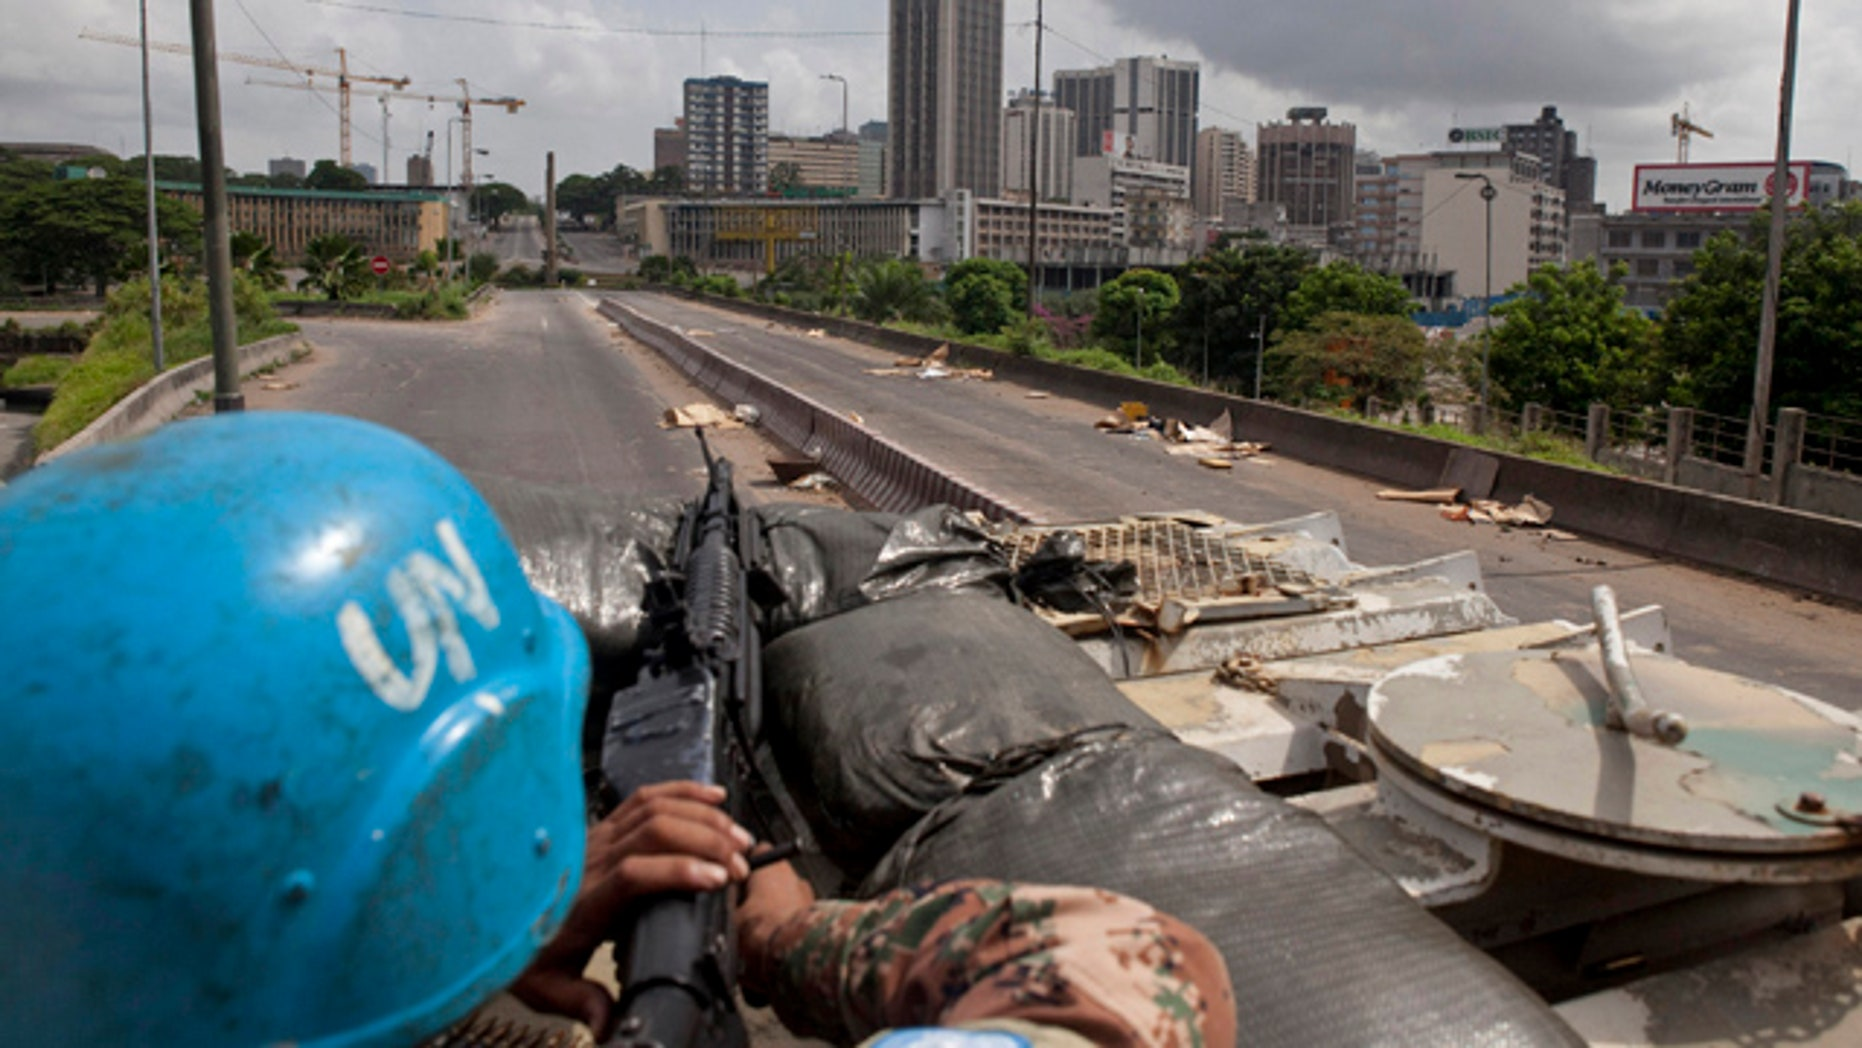 April 8, 2011: UN peacekeepers patrol in the streets of the city of Abidjan, Ivory Coast.